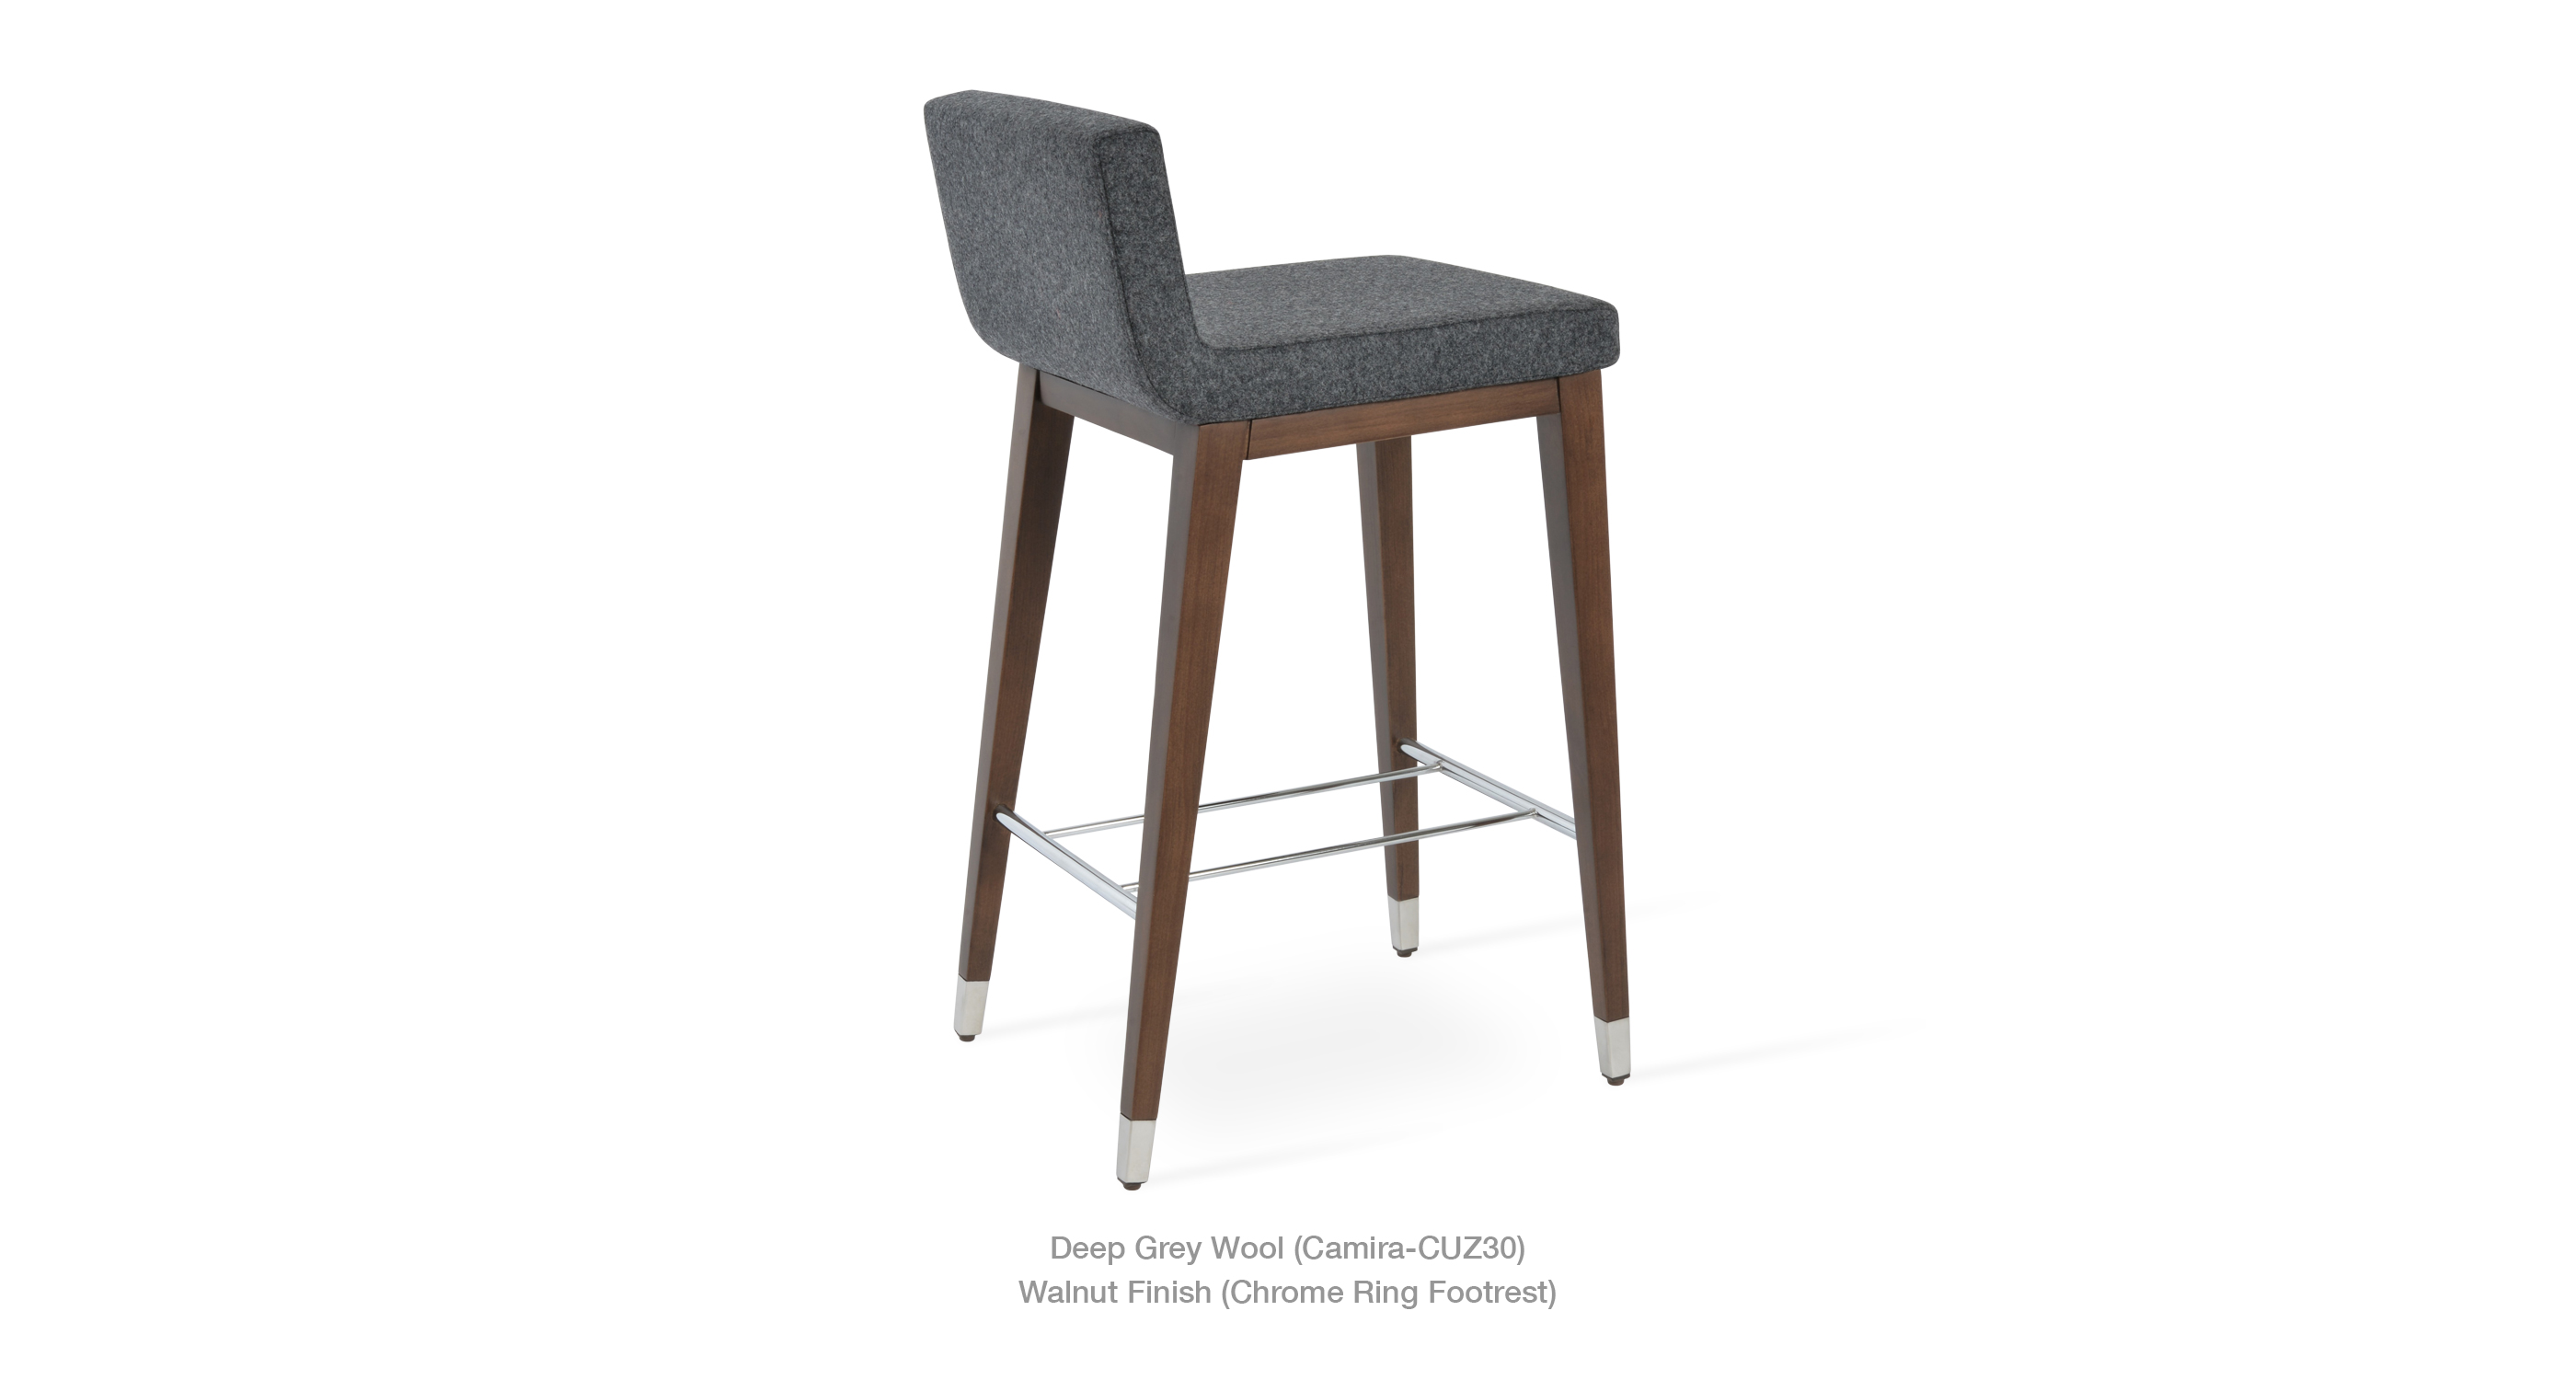 Groovy Dallas Wood Stools Modern Bar Stools Chairs Sohoconcept Pdpeps Interior Chair Design Pdpepsorg